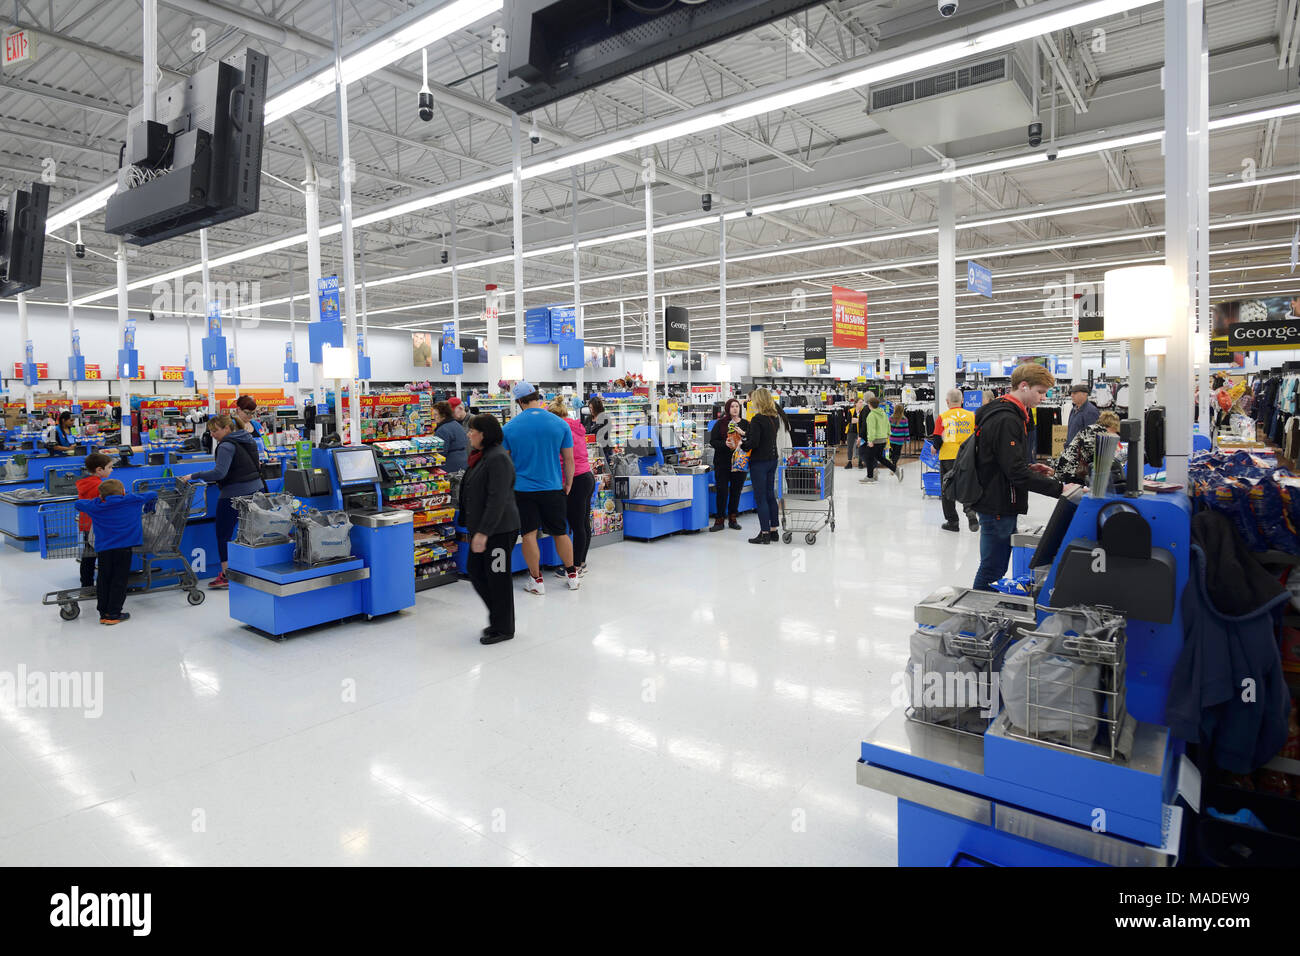 Self-checkout counters, self-service checkout section at Walmart store. British Columbia, Canada 2017. Stock Photo